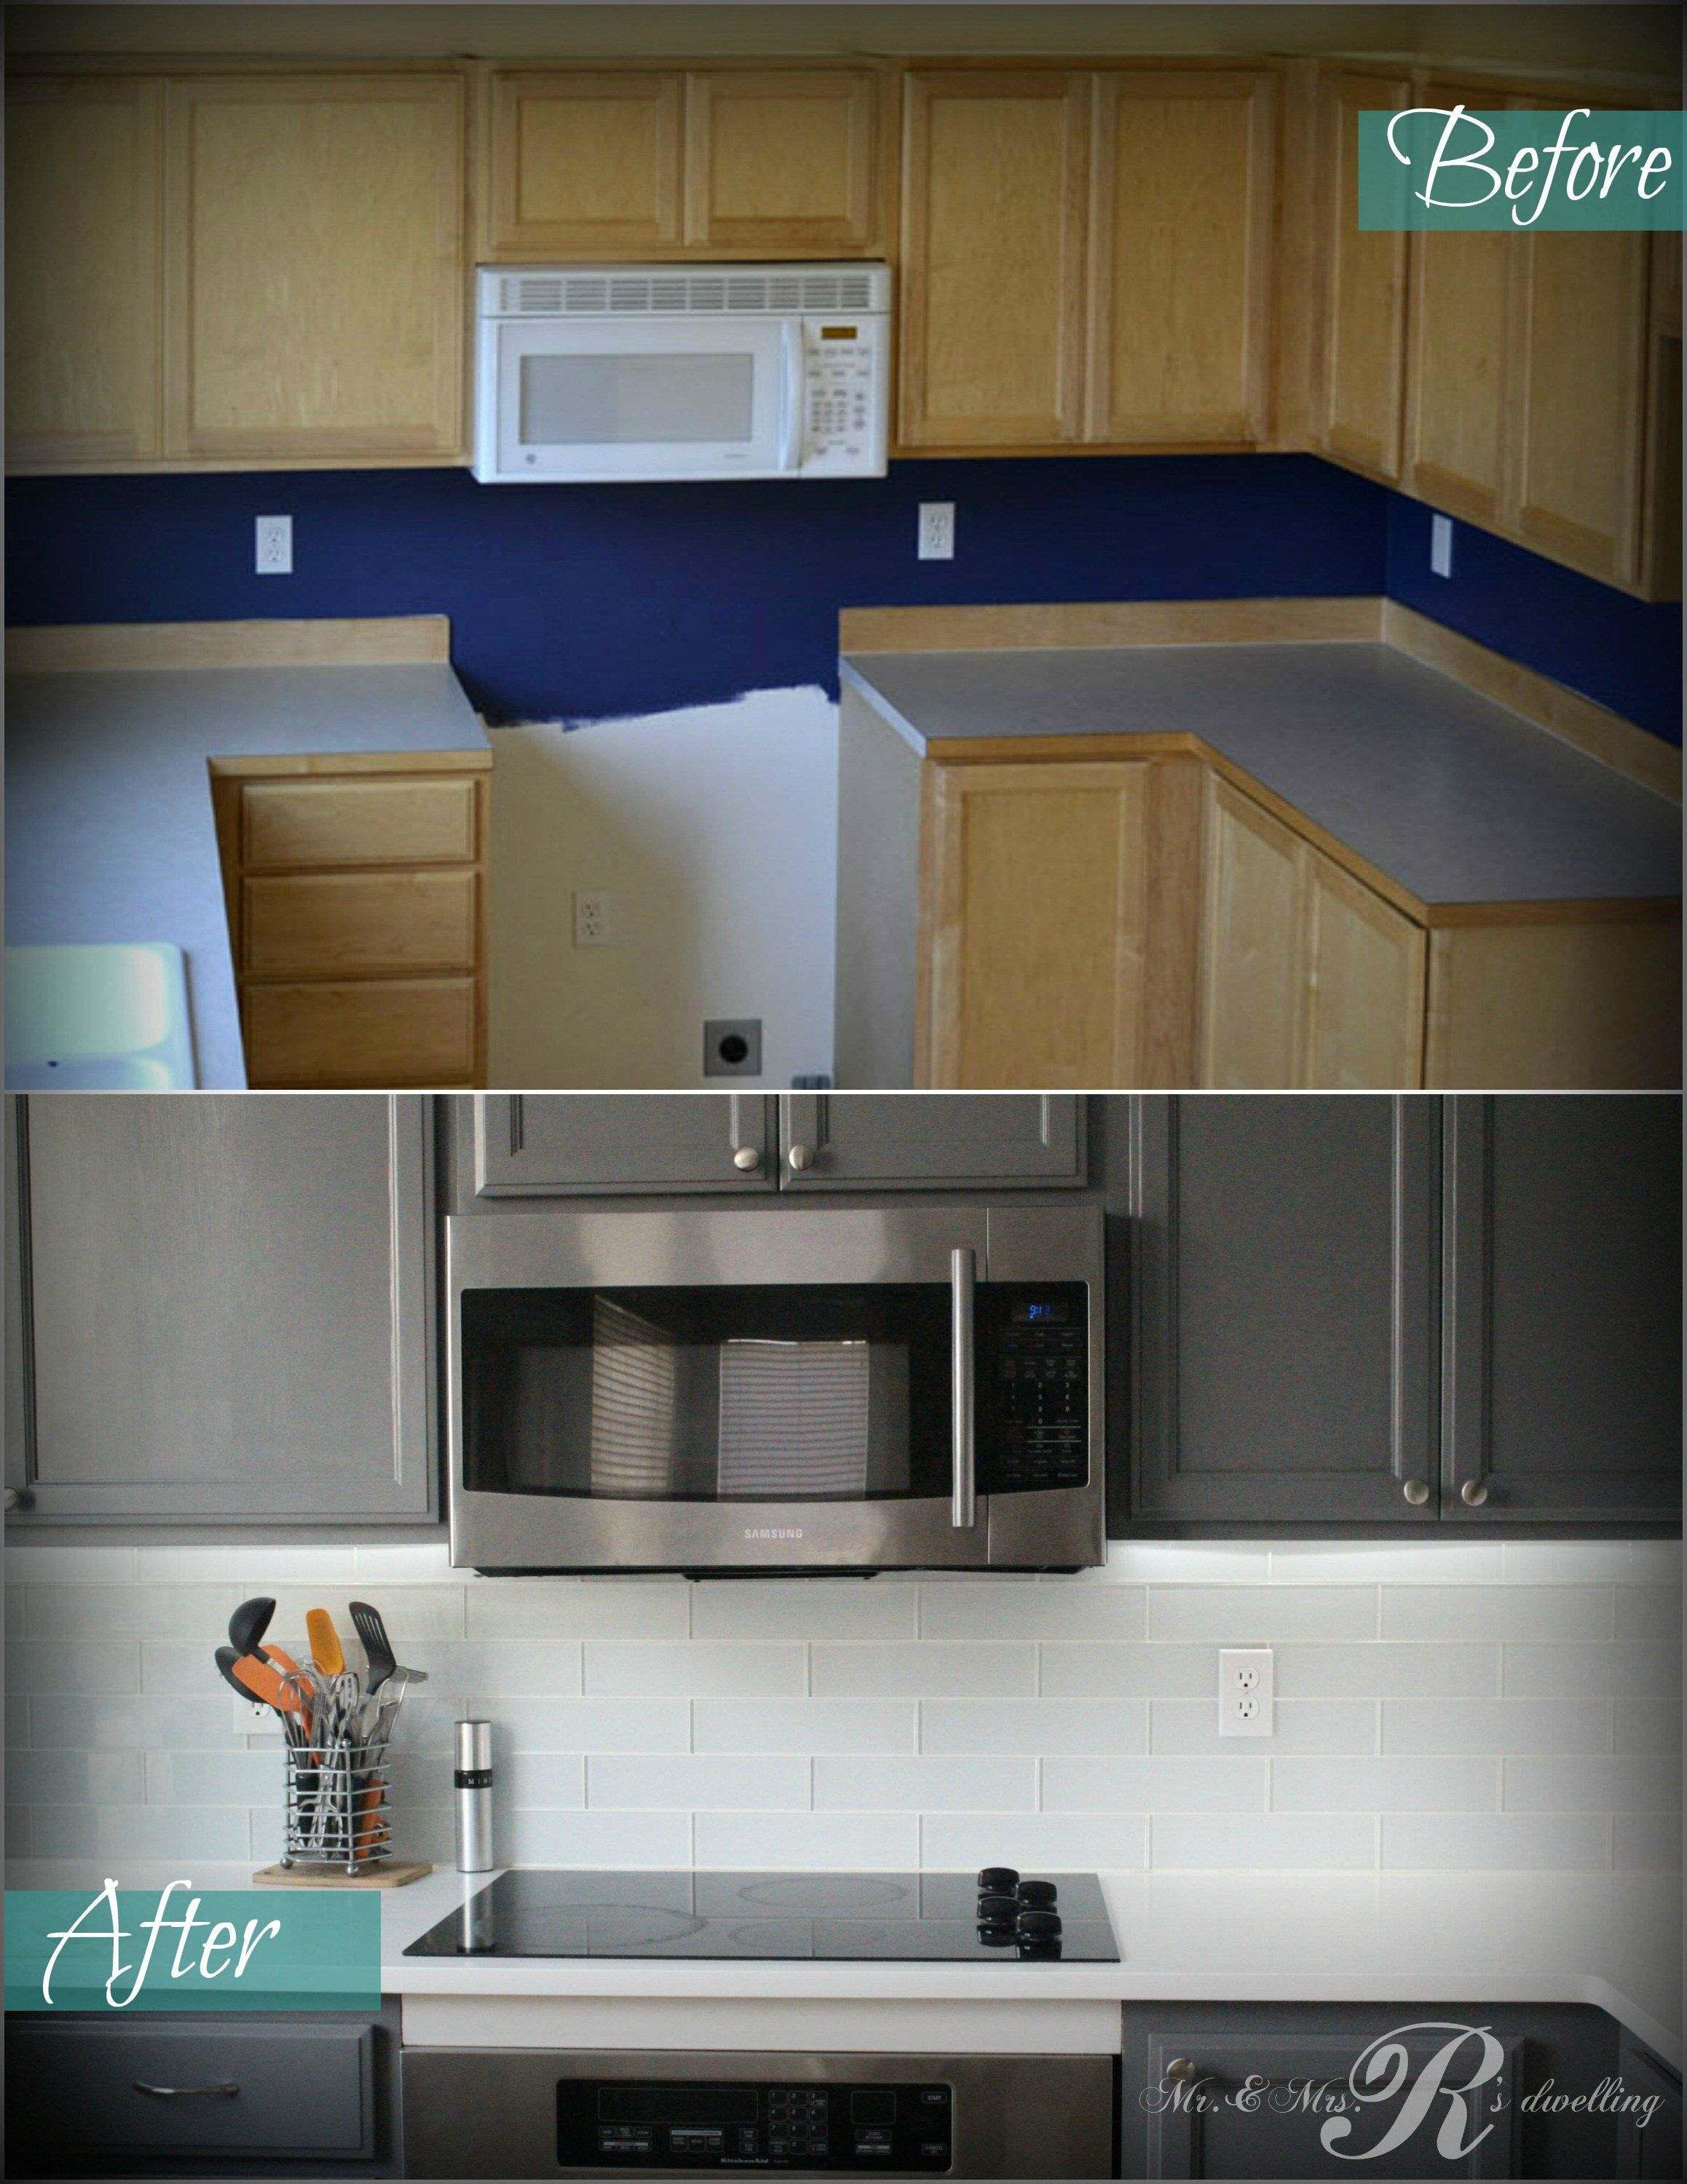 lighting photos pictures trends cabinet redo kitchen plans home design and cabinets of decorations old ki remodel countertops options ideas